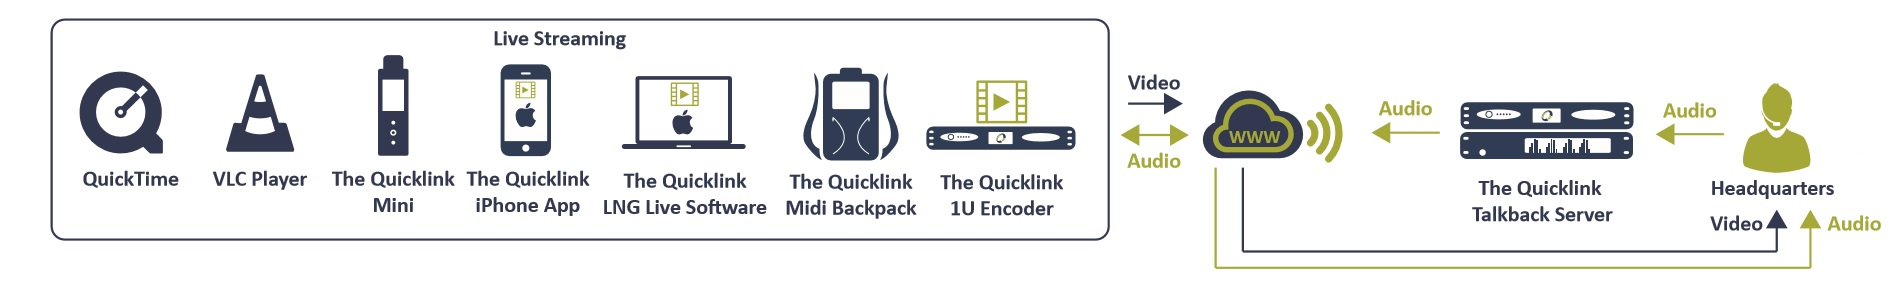 Quicklink-Talkback-diagram